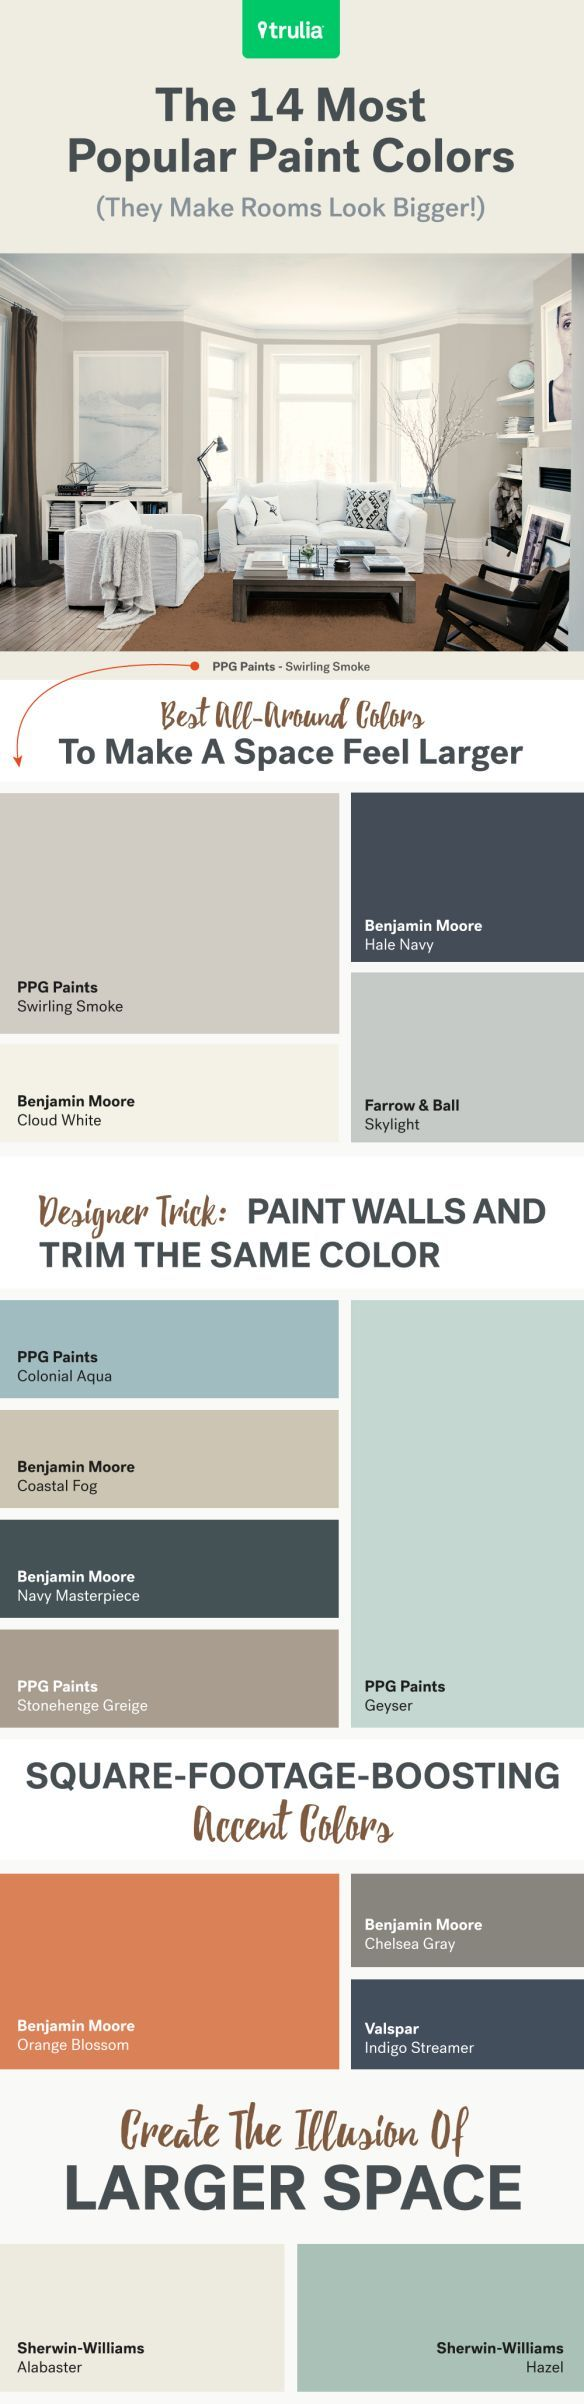 nice The 14 Most Popular Paint Colors (They Make A Room Look Bigger!)